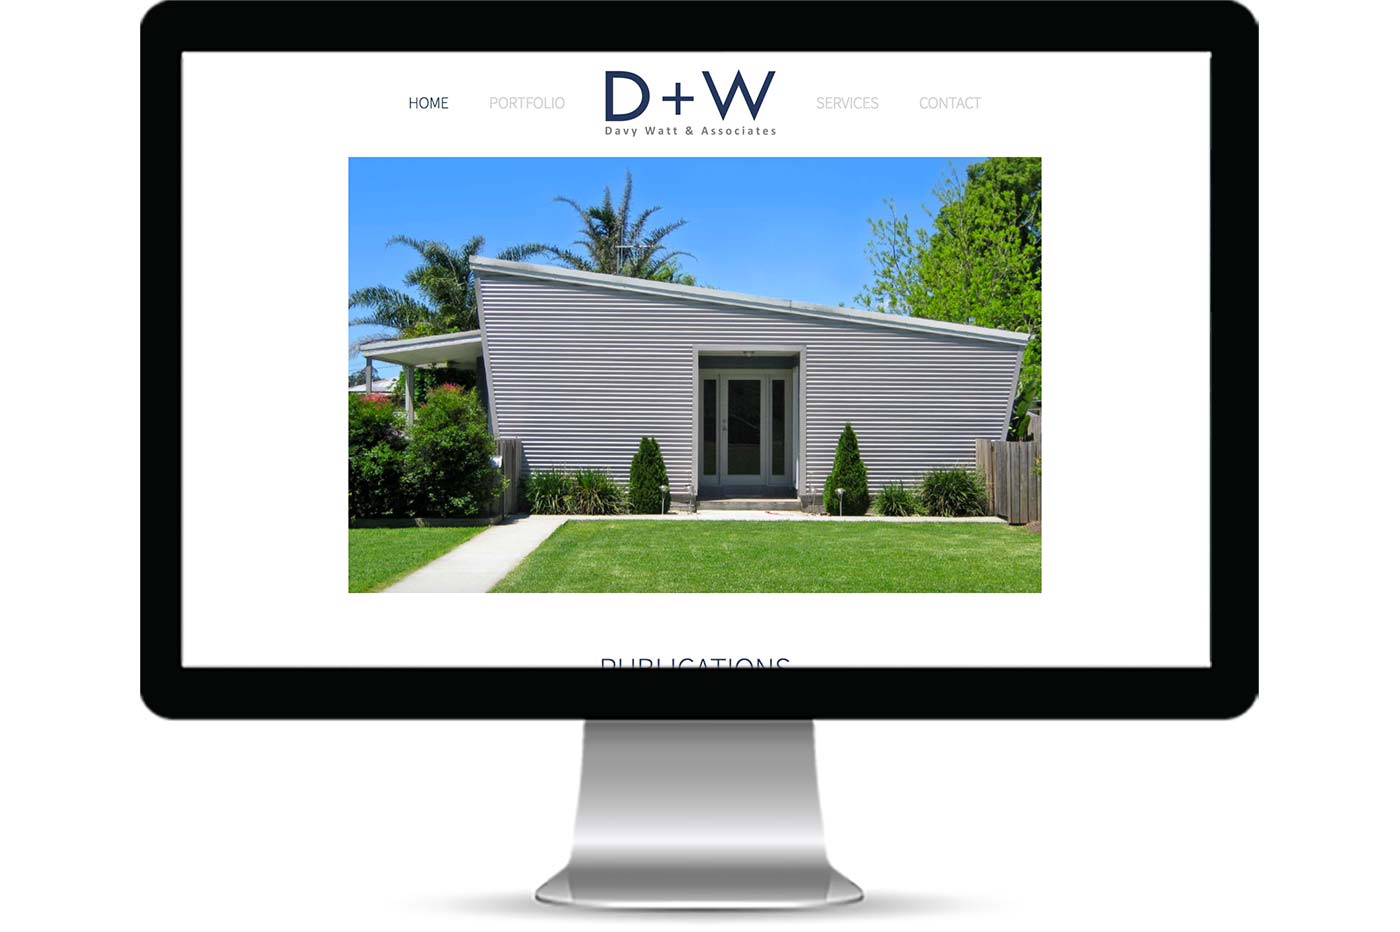 Advantage iT Solutions Web Portfolio - Davy Watt & Associates